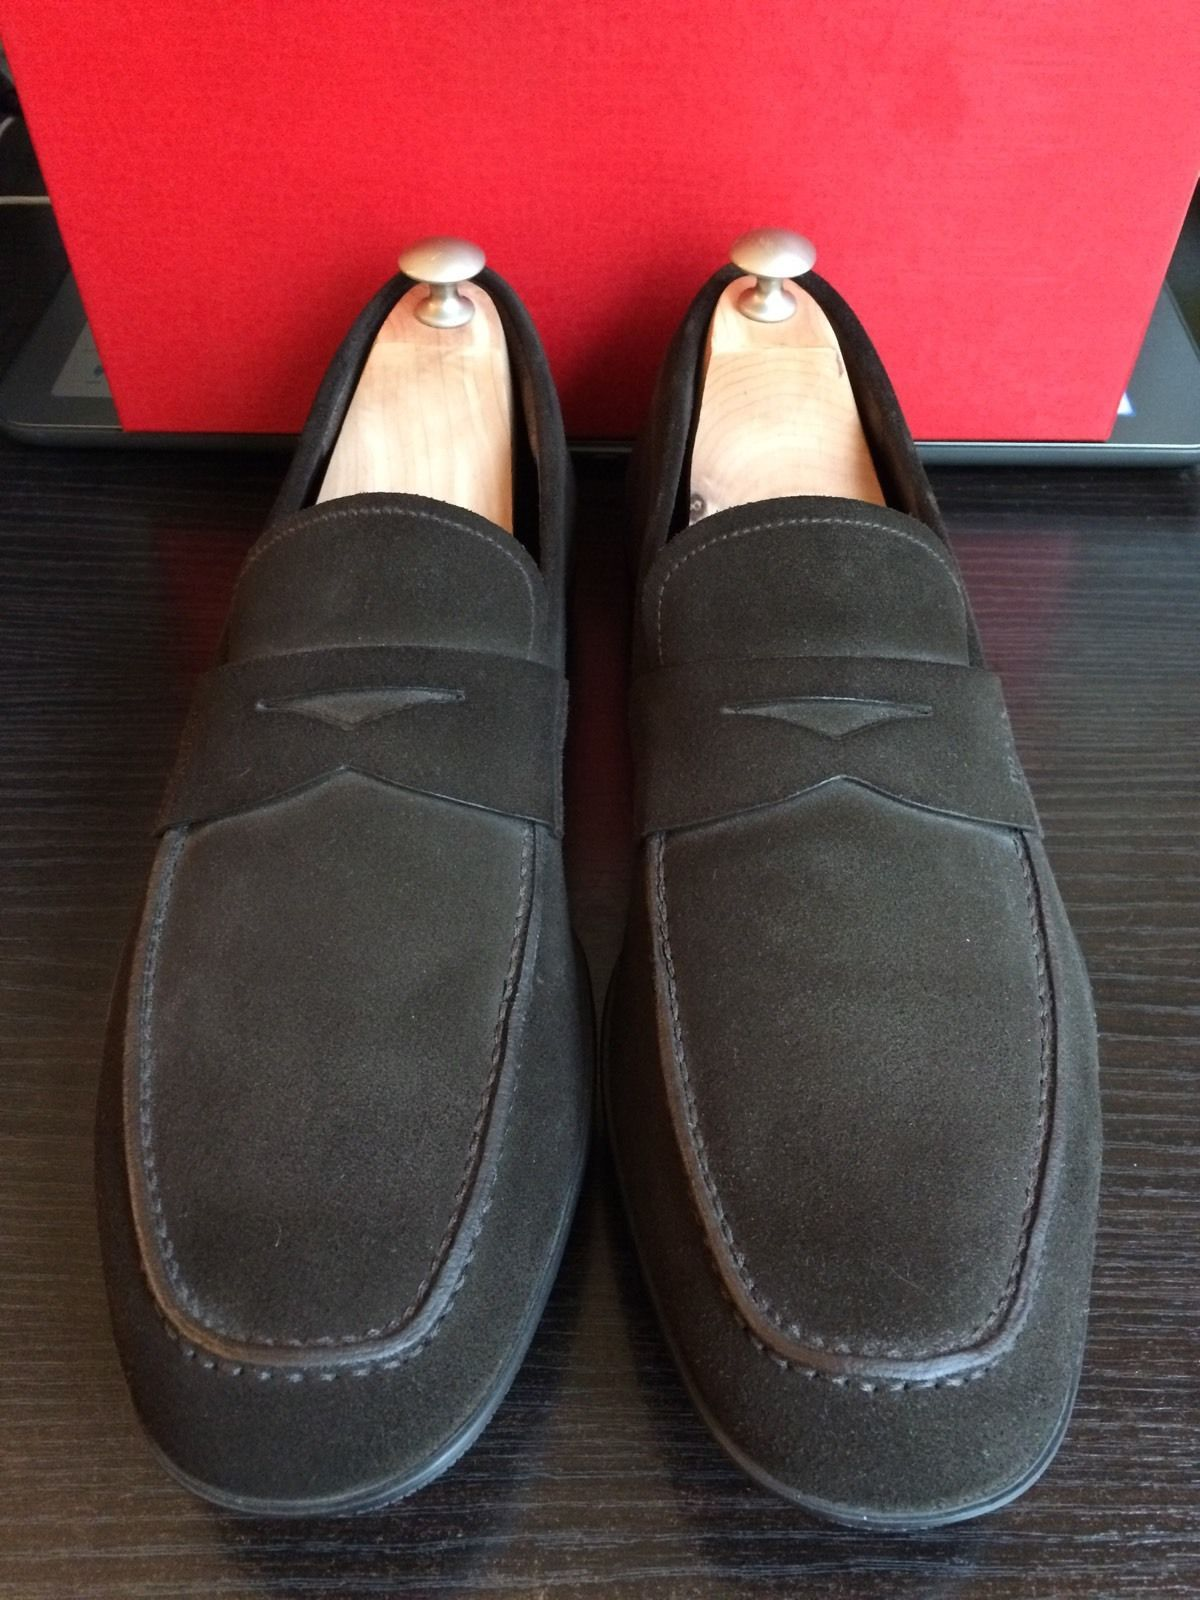 MEN'S PRADA LOAFERS IN DARK BROWN SUEDE USA SIZE 10 D. MADE IN ITALY! | Dress shoes men. Mens brown leather loafers. Loafers